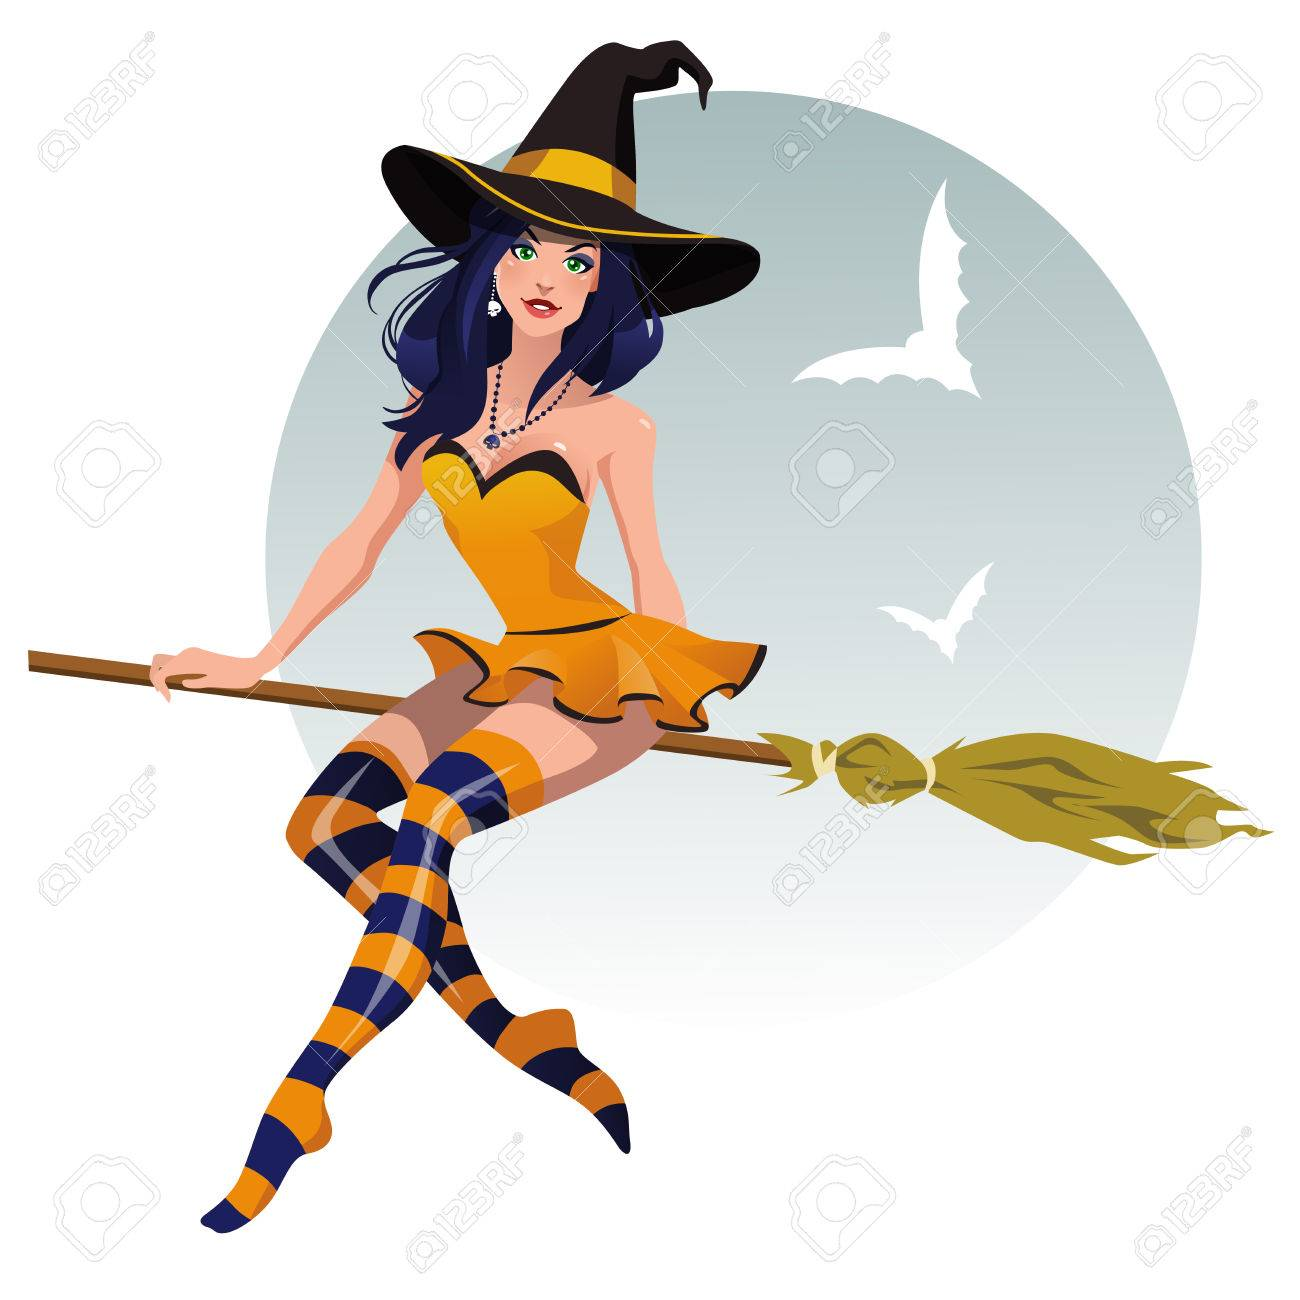 Witch hot lady photo